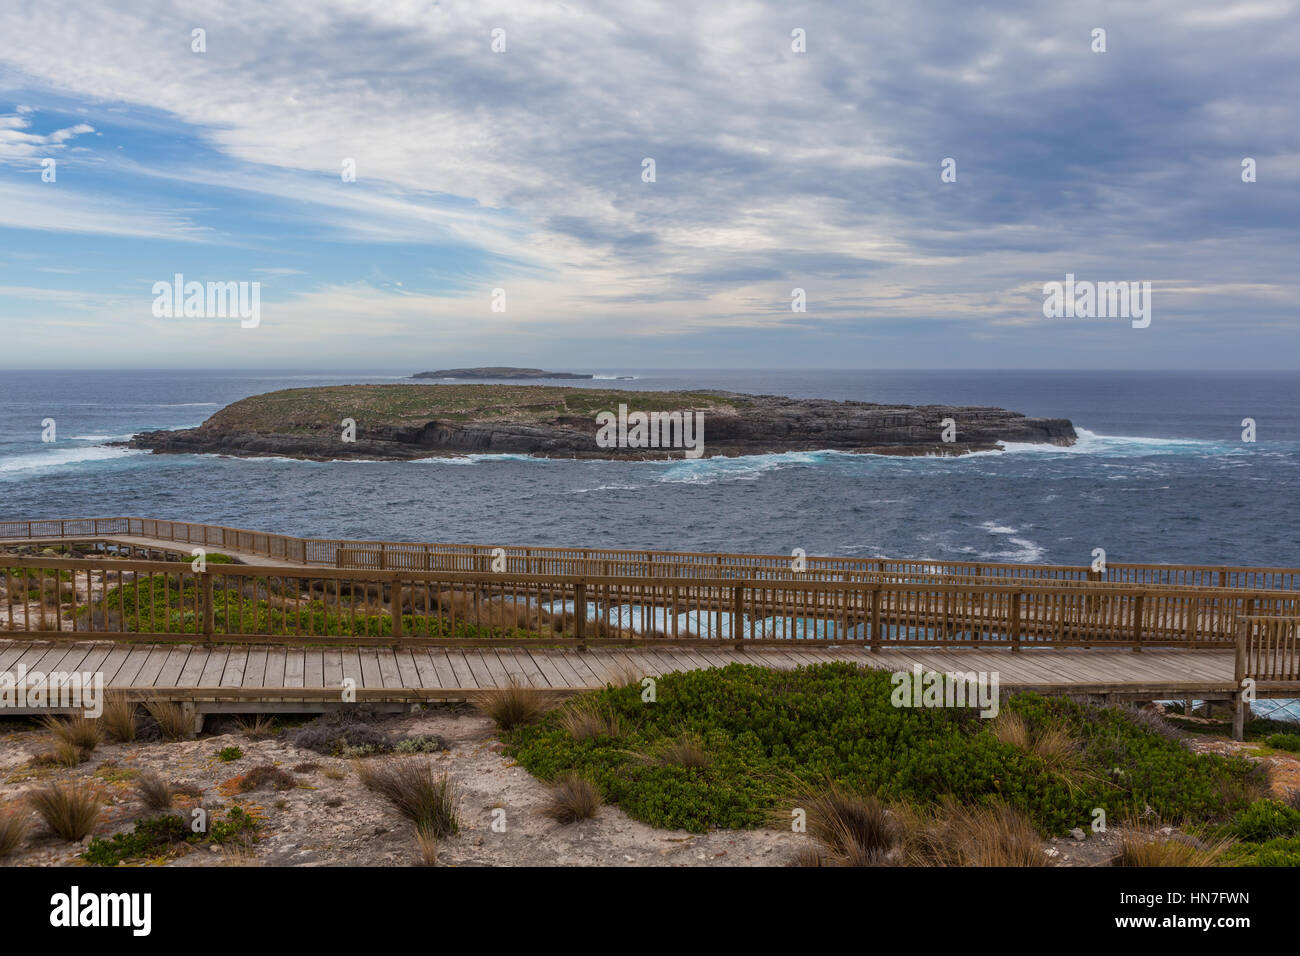 Cape du Couedic boardwalk. Flinders Chase National Park, Kangaroo Island, South Australia Stock Photo